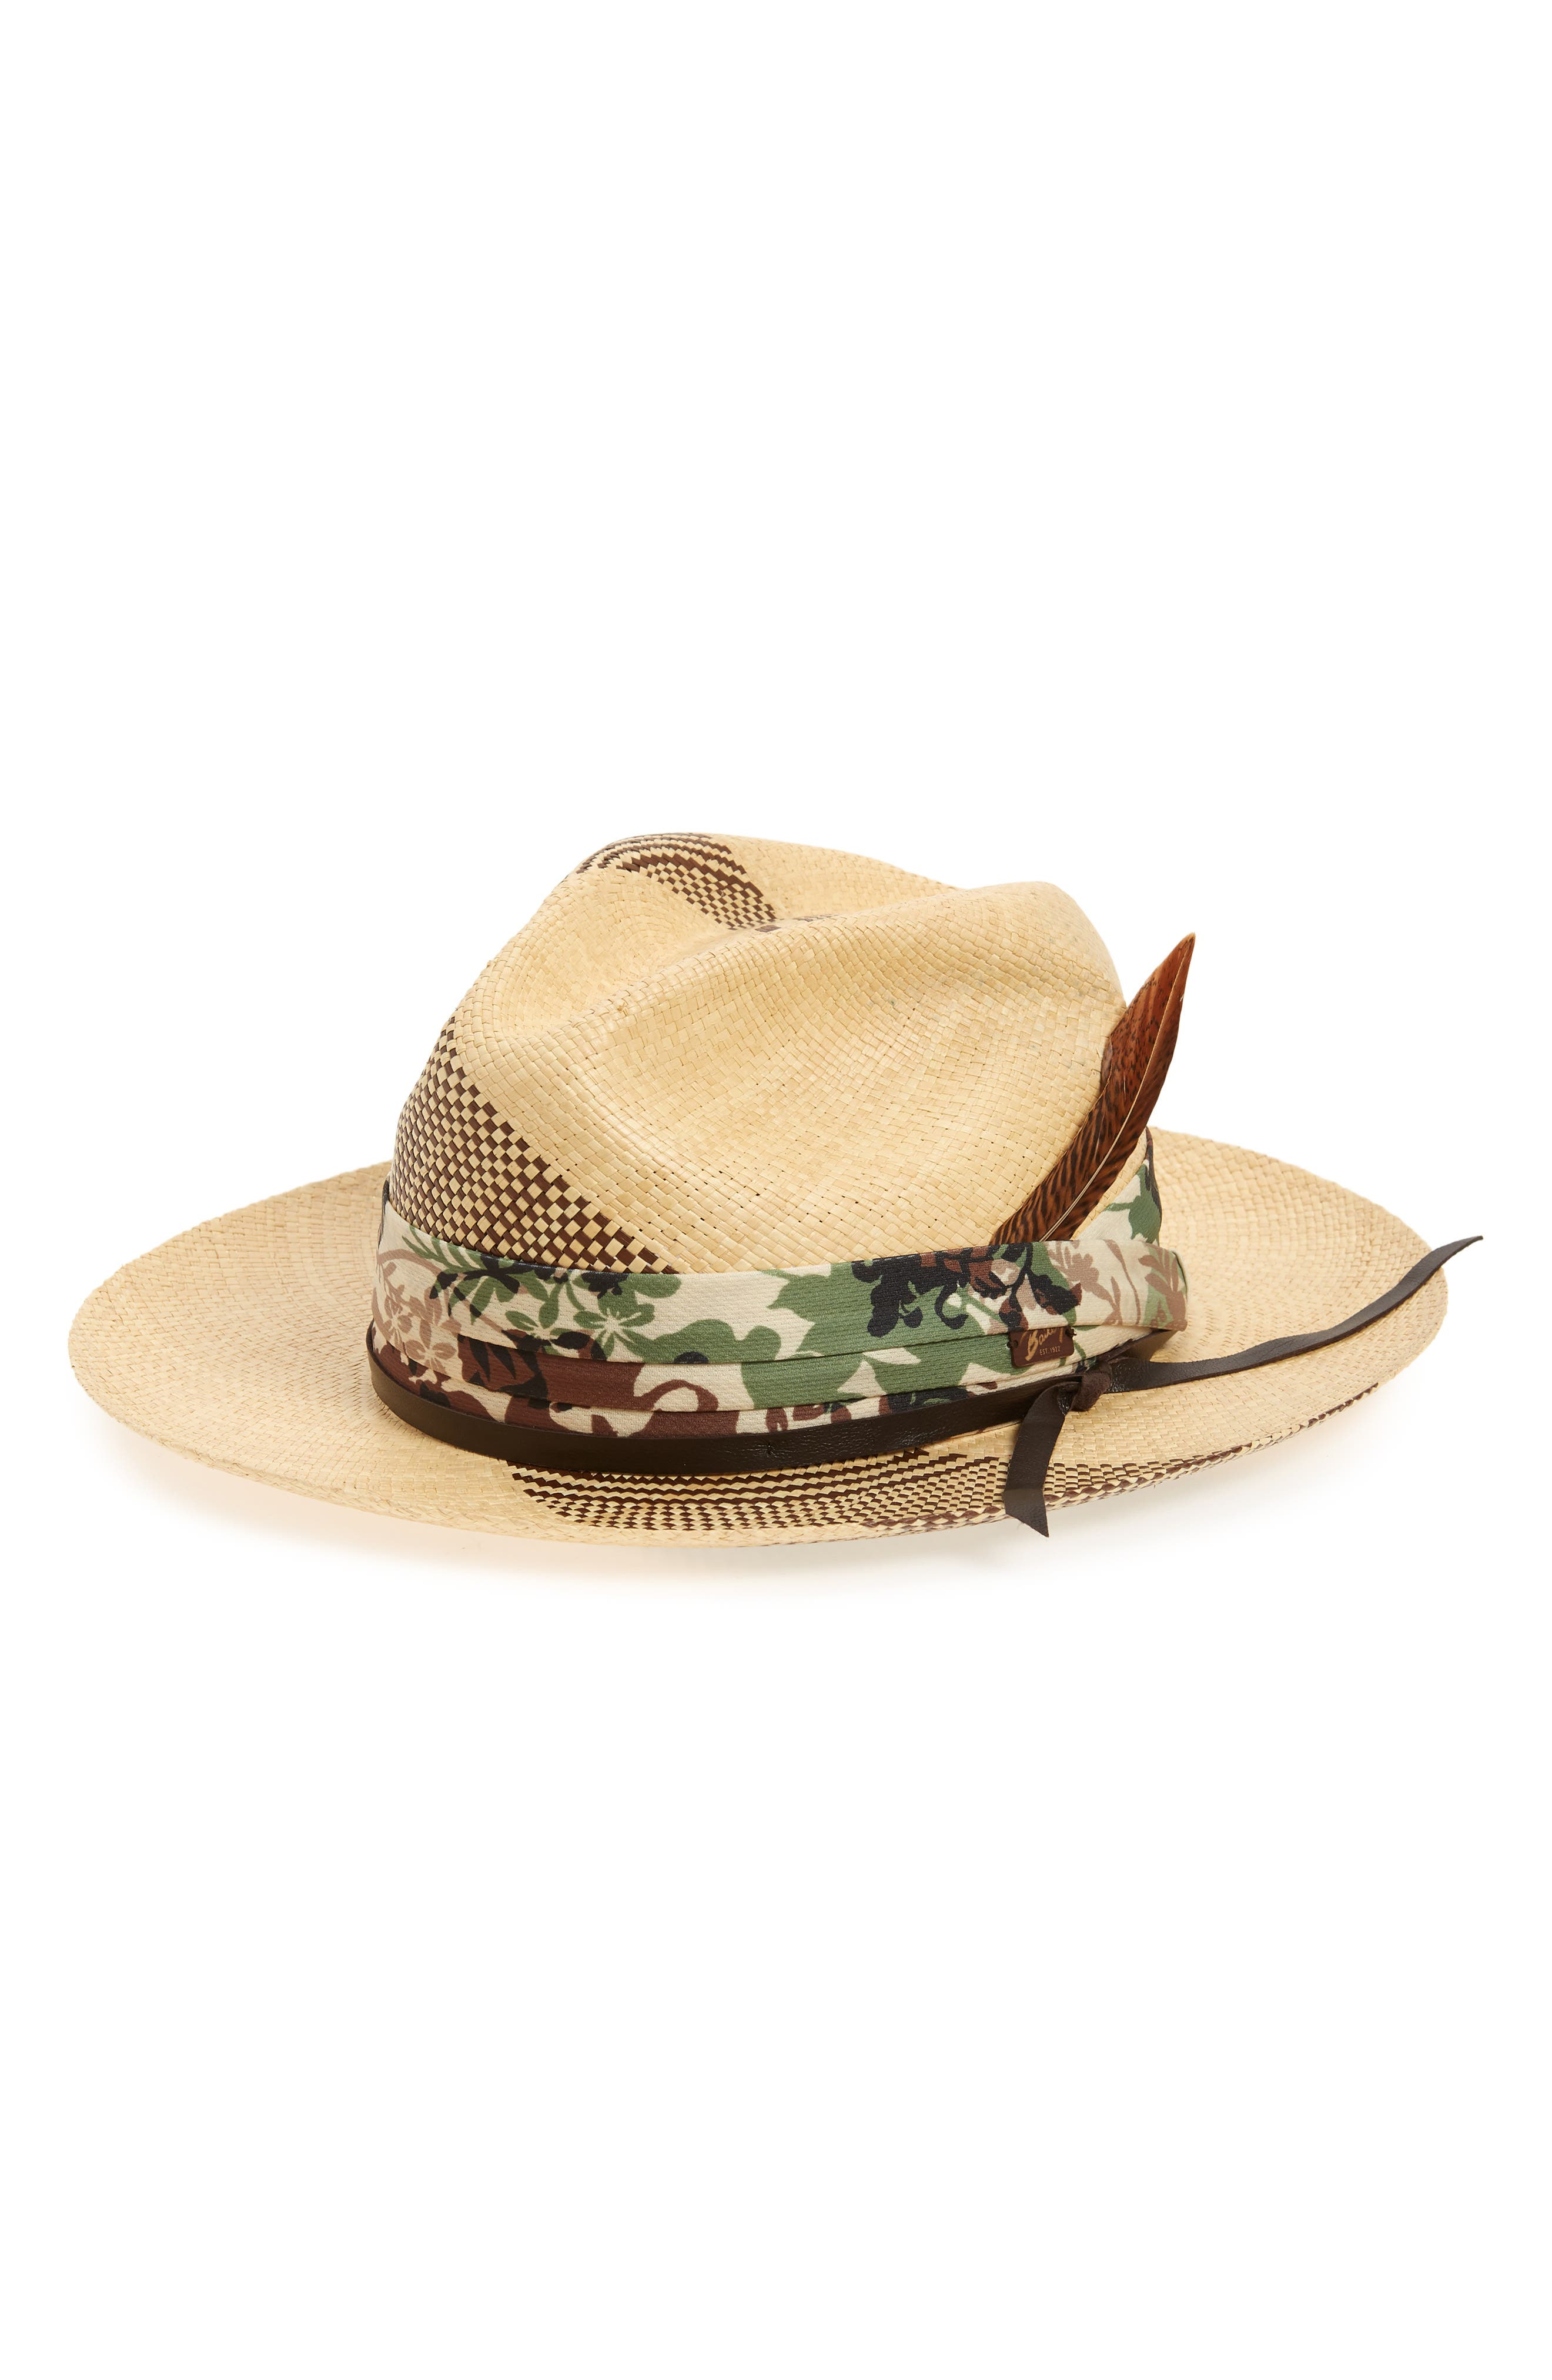 Rayney Straw Panama Hat,                             Main thumbnail 1, color,                             250